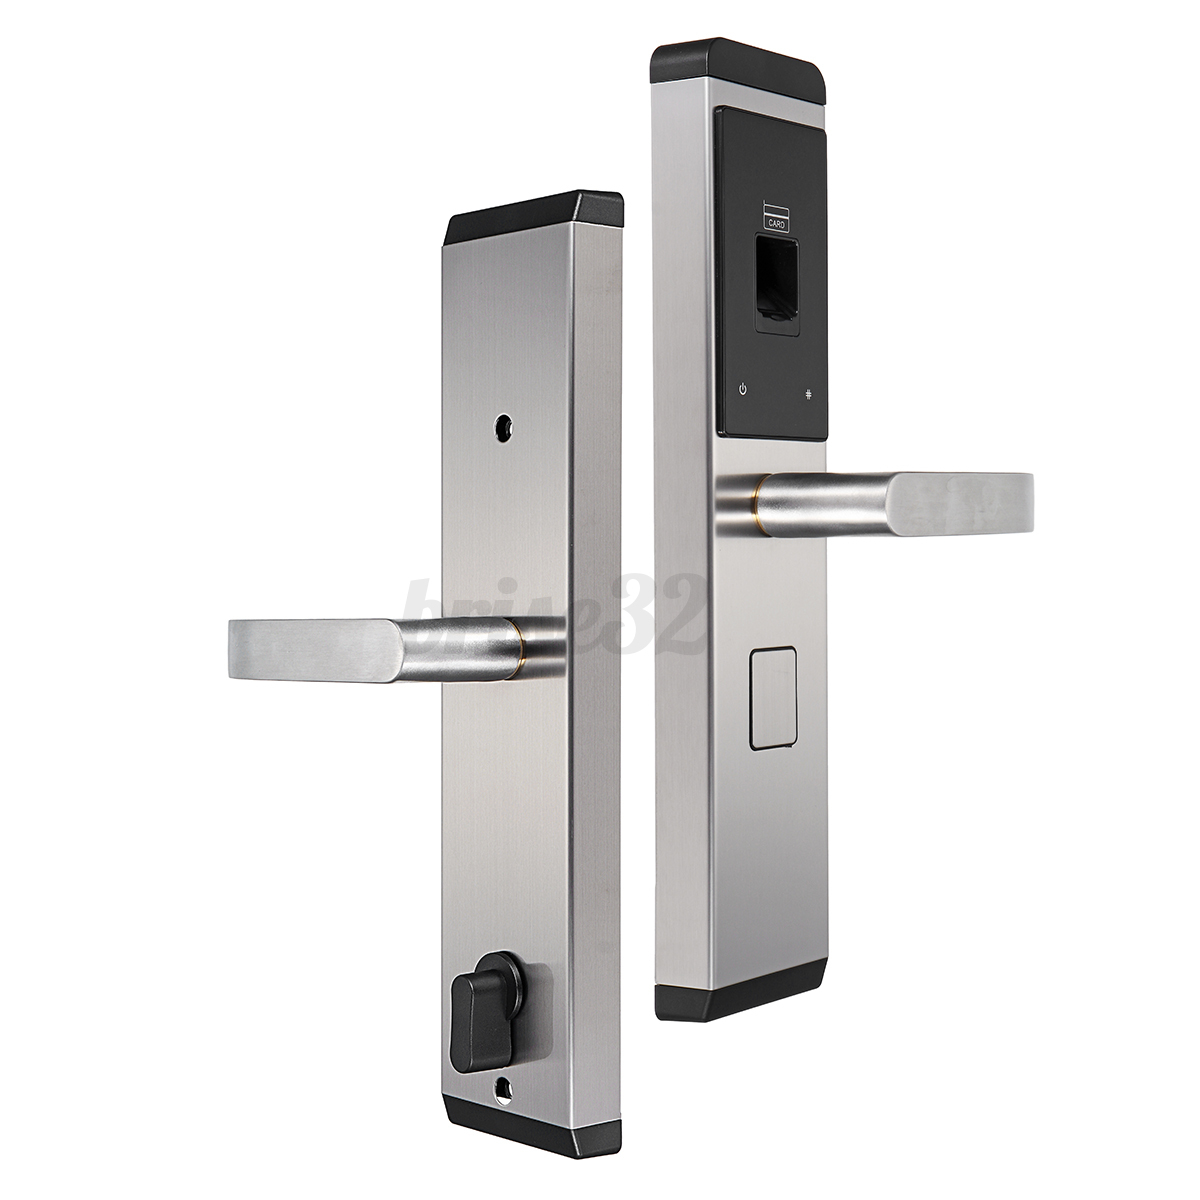 Universal-Electric-Smart-Door-Lock-Fingerprint-Touch-Password-Keyless-Security thumbnail 6